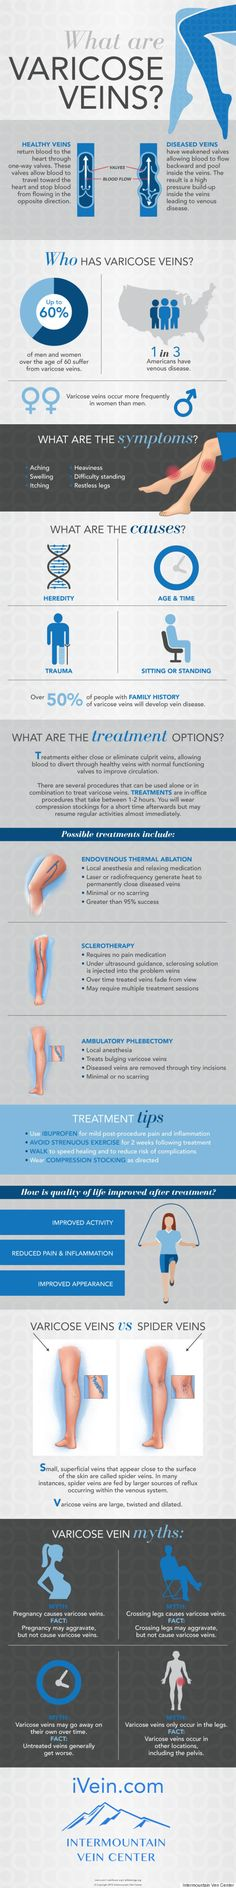 Everything you need to know about varicose veins, from symptoms to treatment.